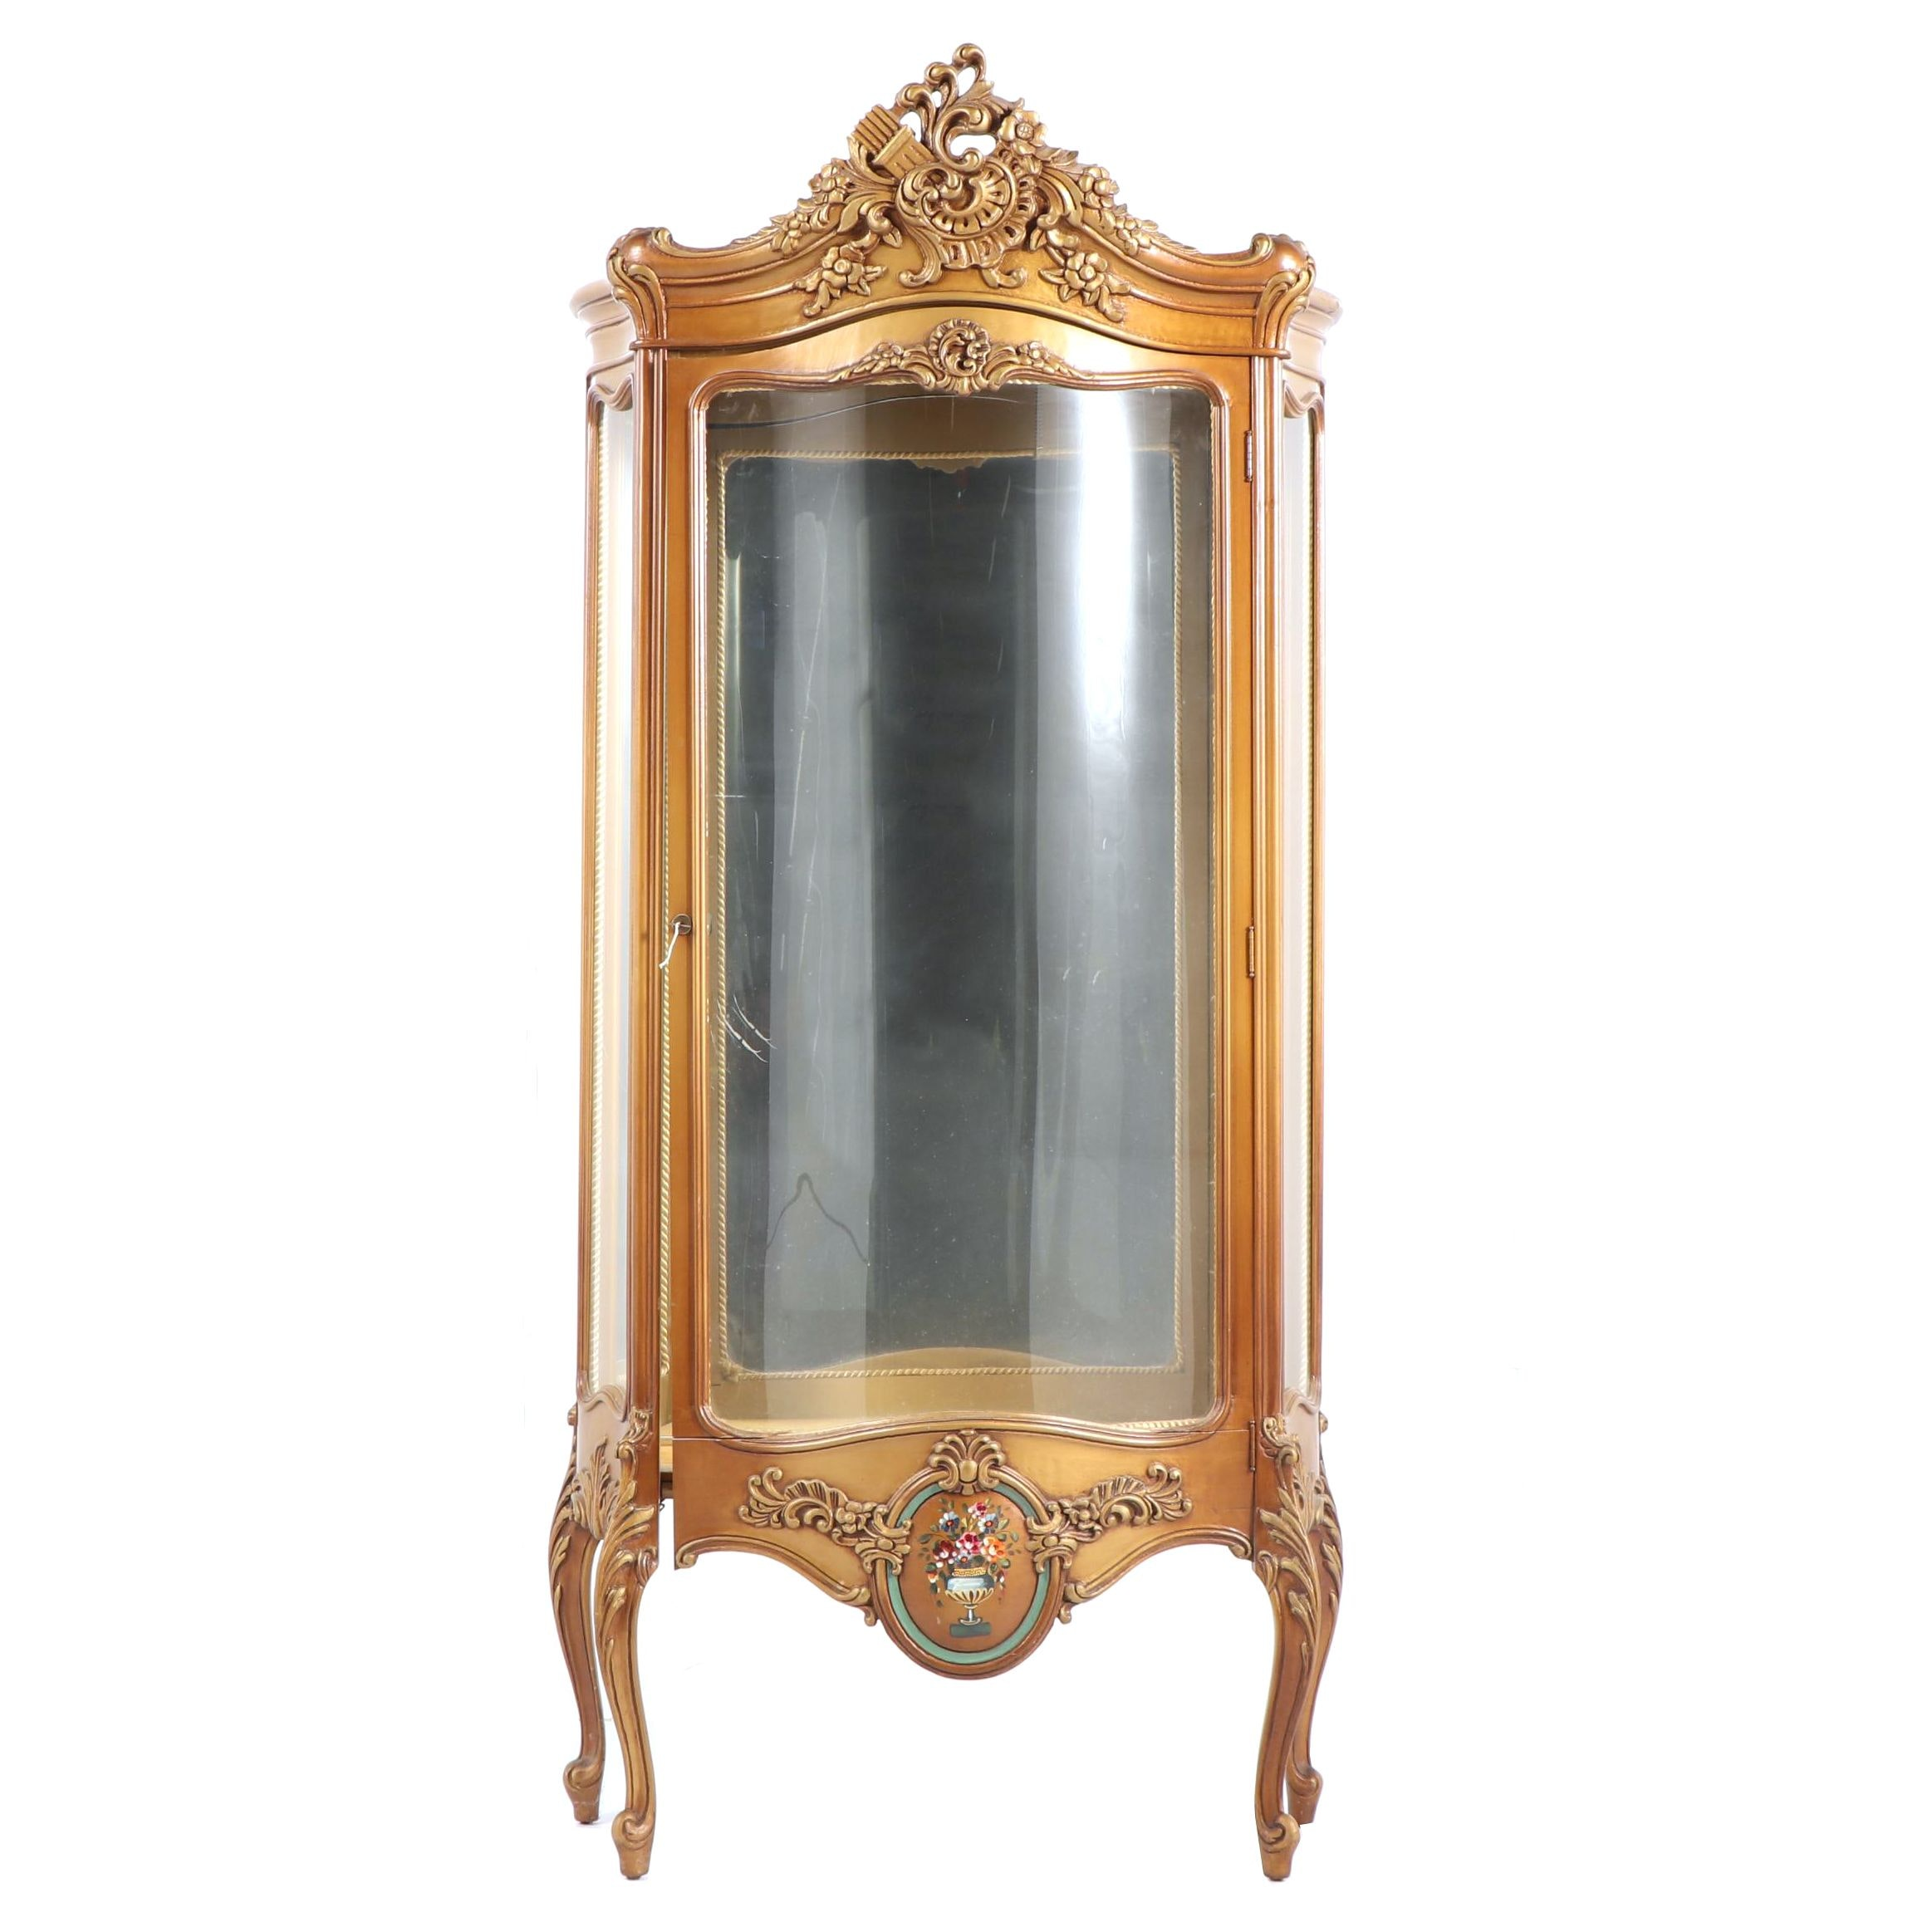 Louis XV Style Painted Wood Illuminated Curio Cabinet, Early/Mid 20th Century